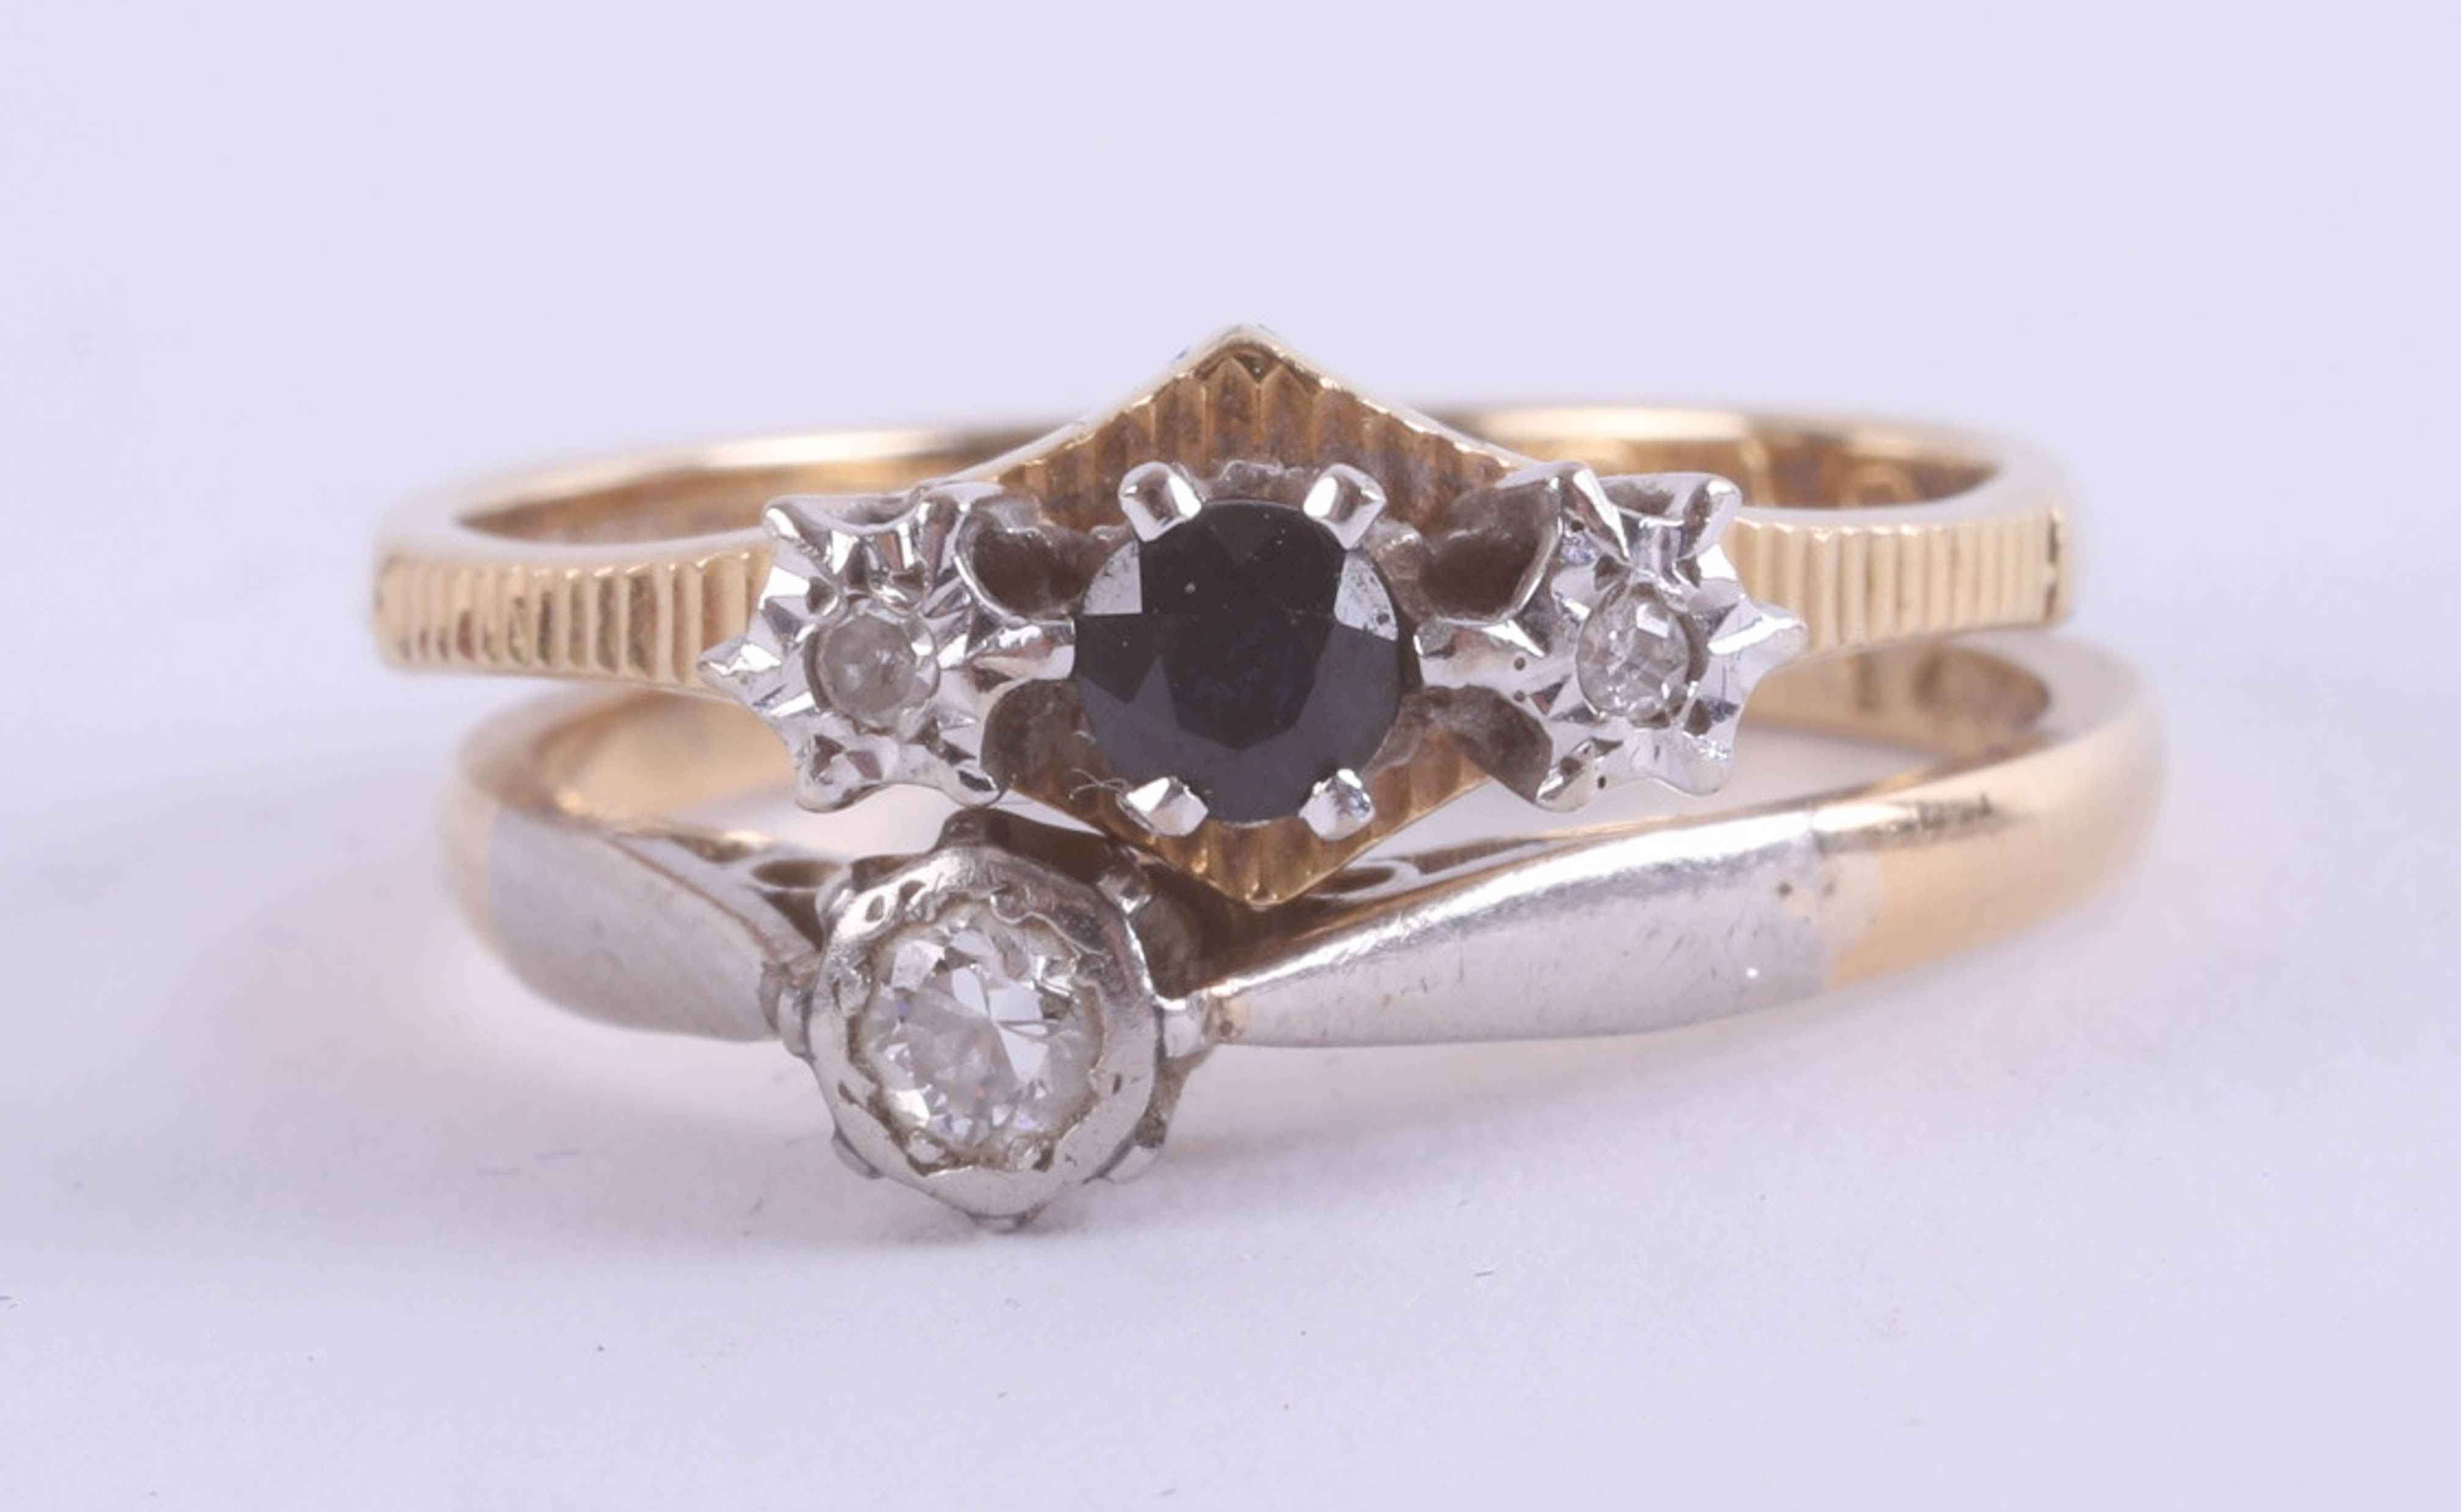 Lot 022 - Two 18ct rings set with small sapphires and diamonds, total weight approximately 4.9g.